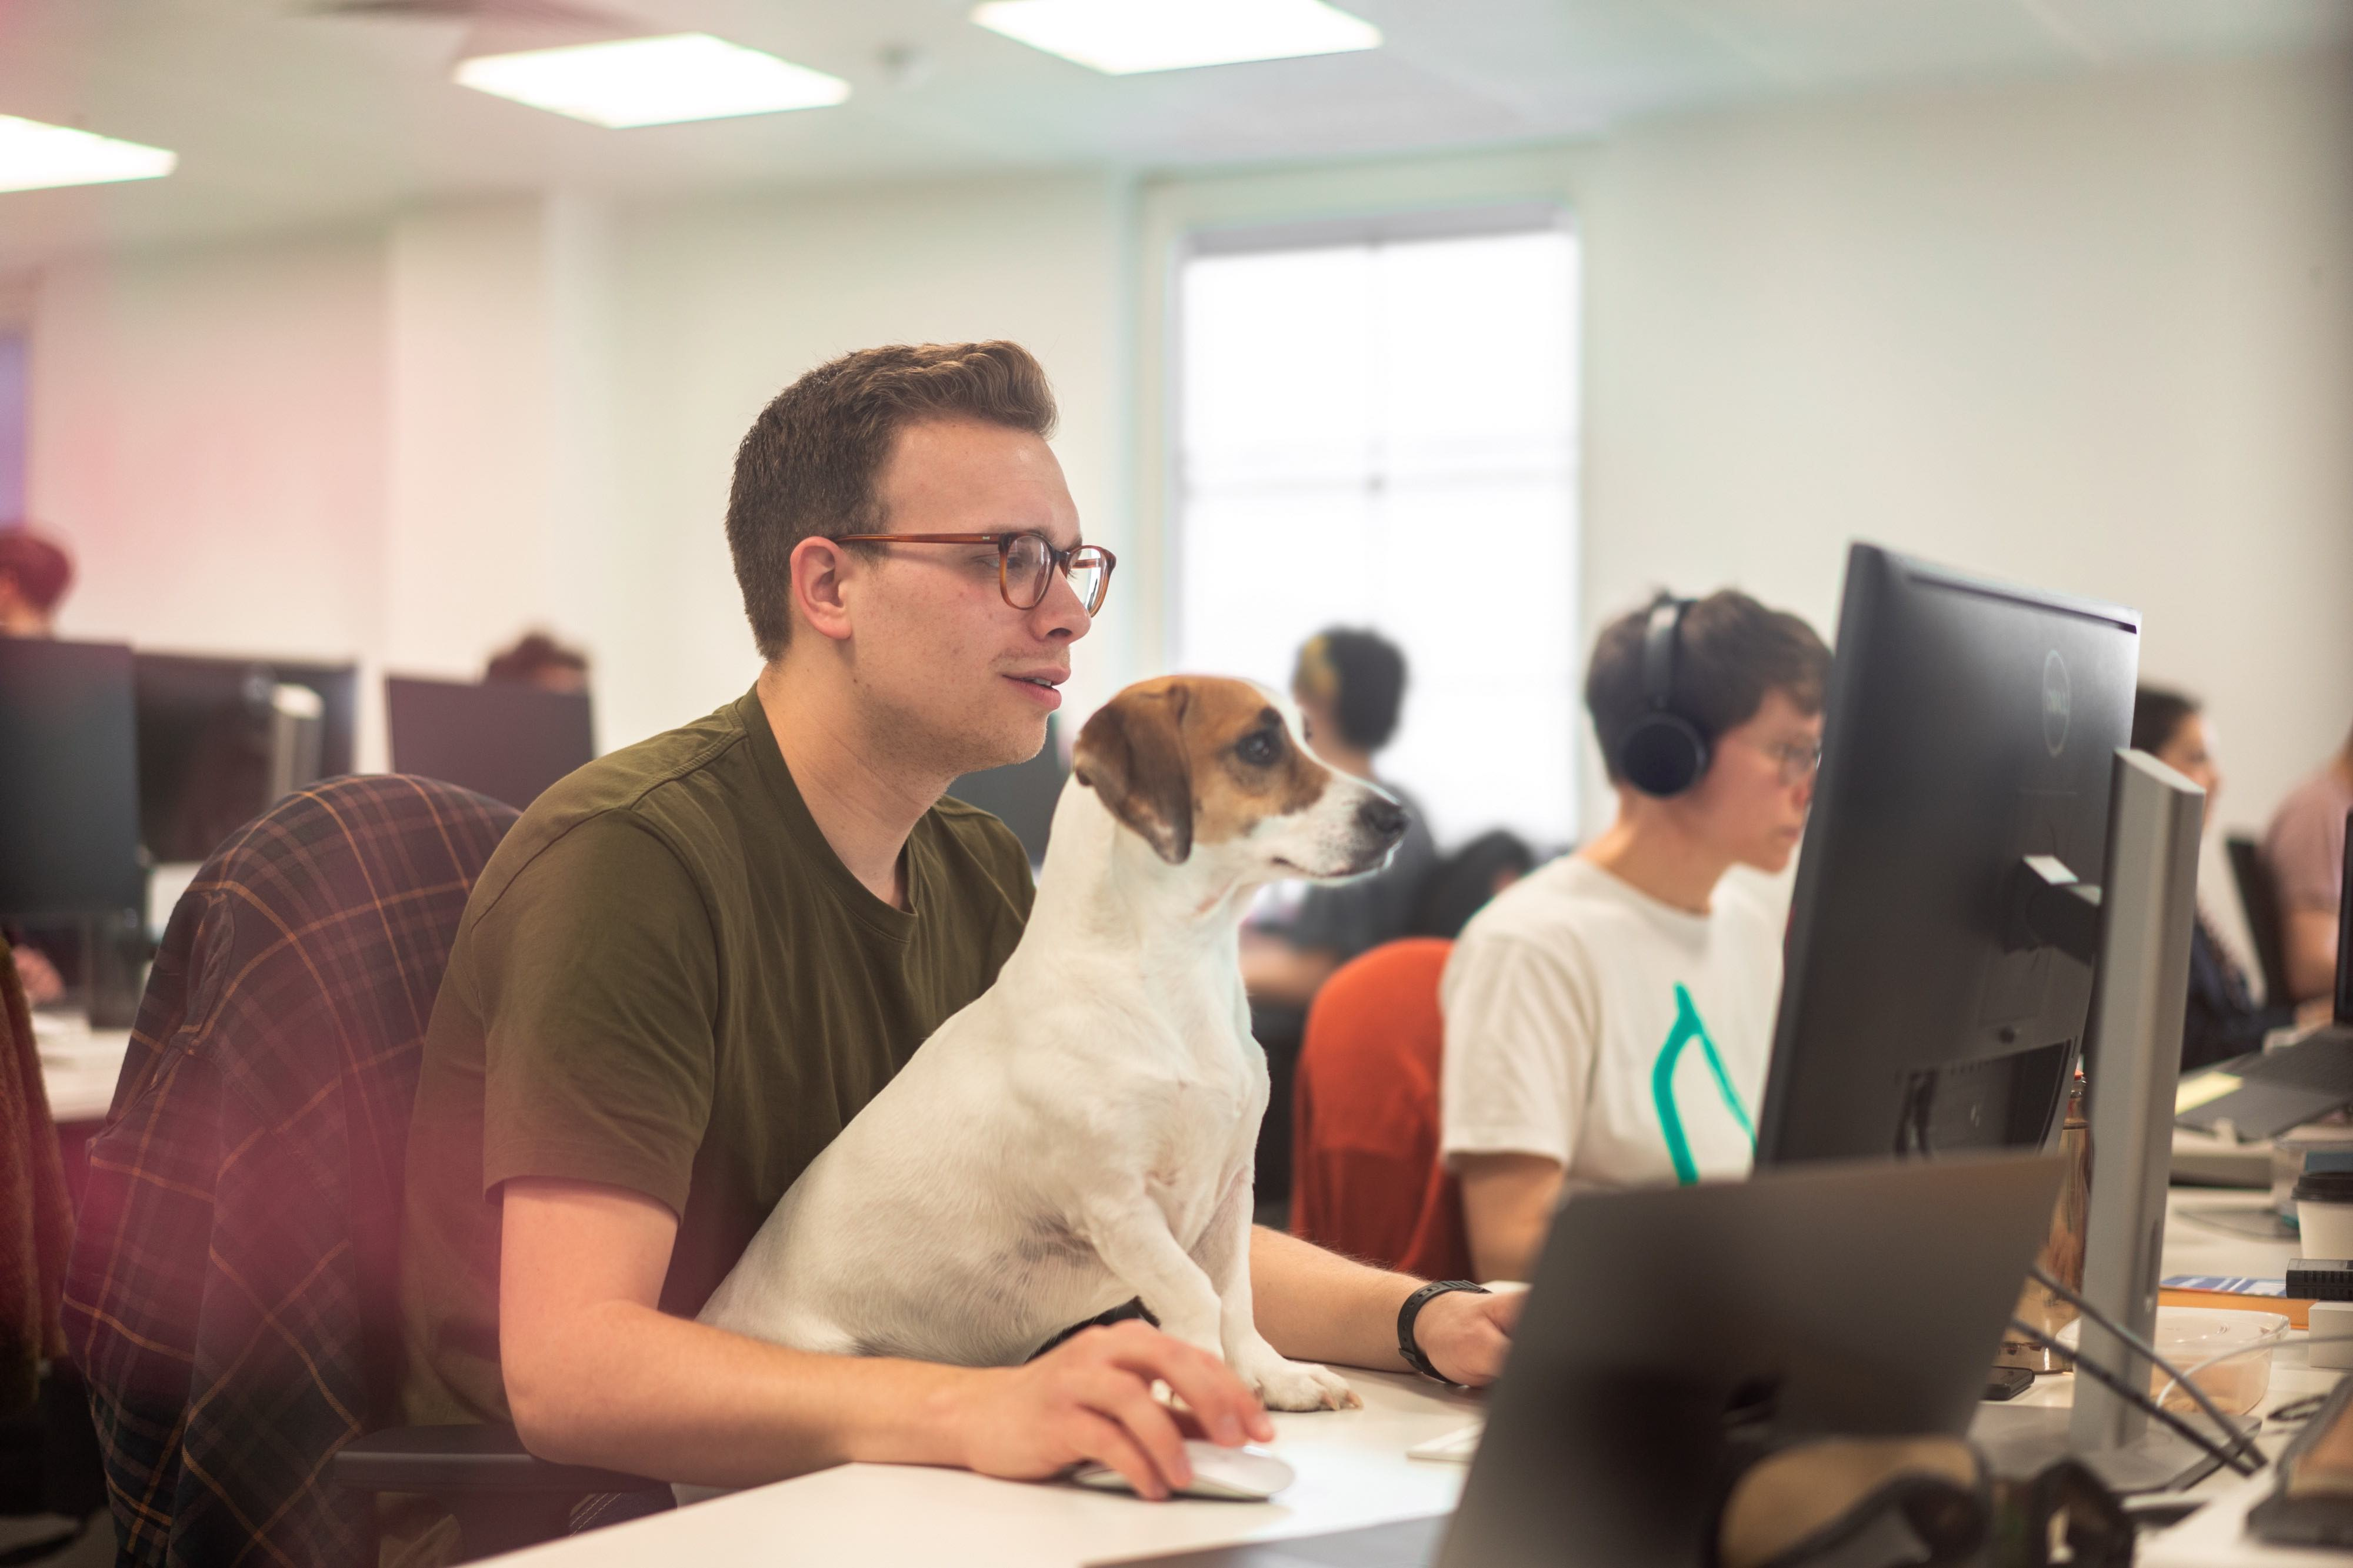 A photo of Dominic at a computer with Albie, his dog, sitting on his lap looking at the screen.